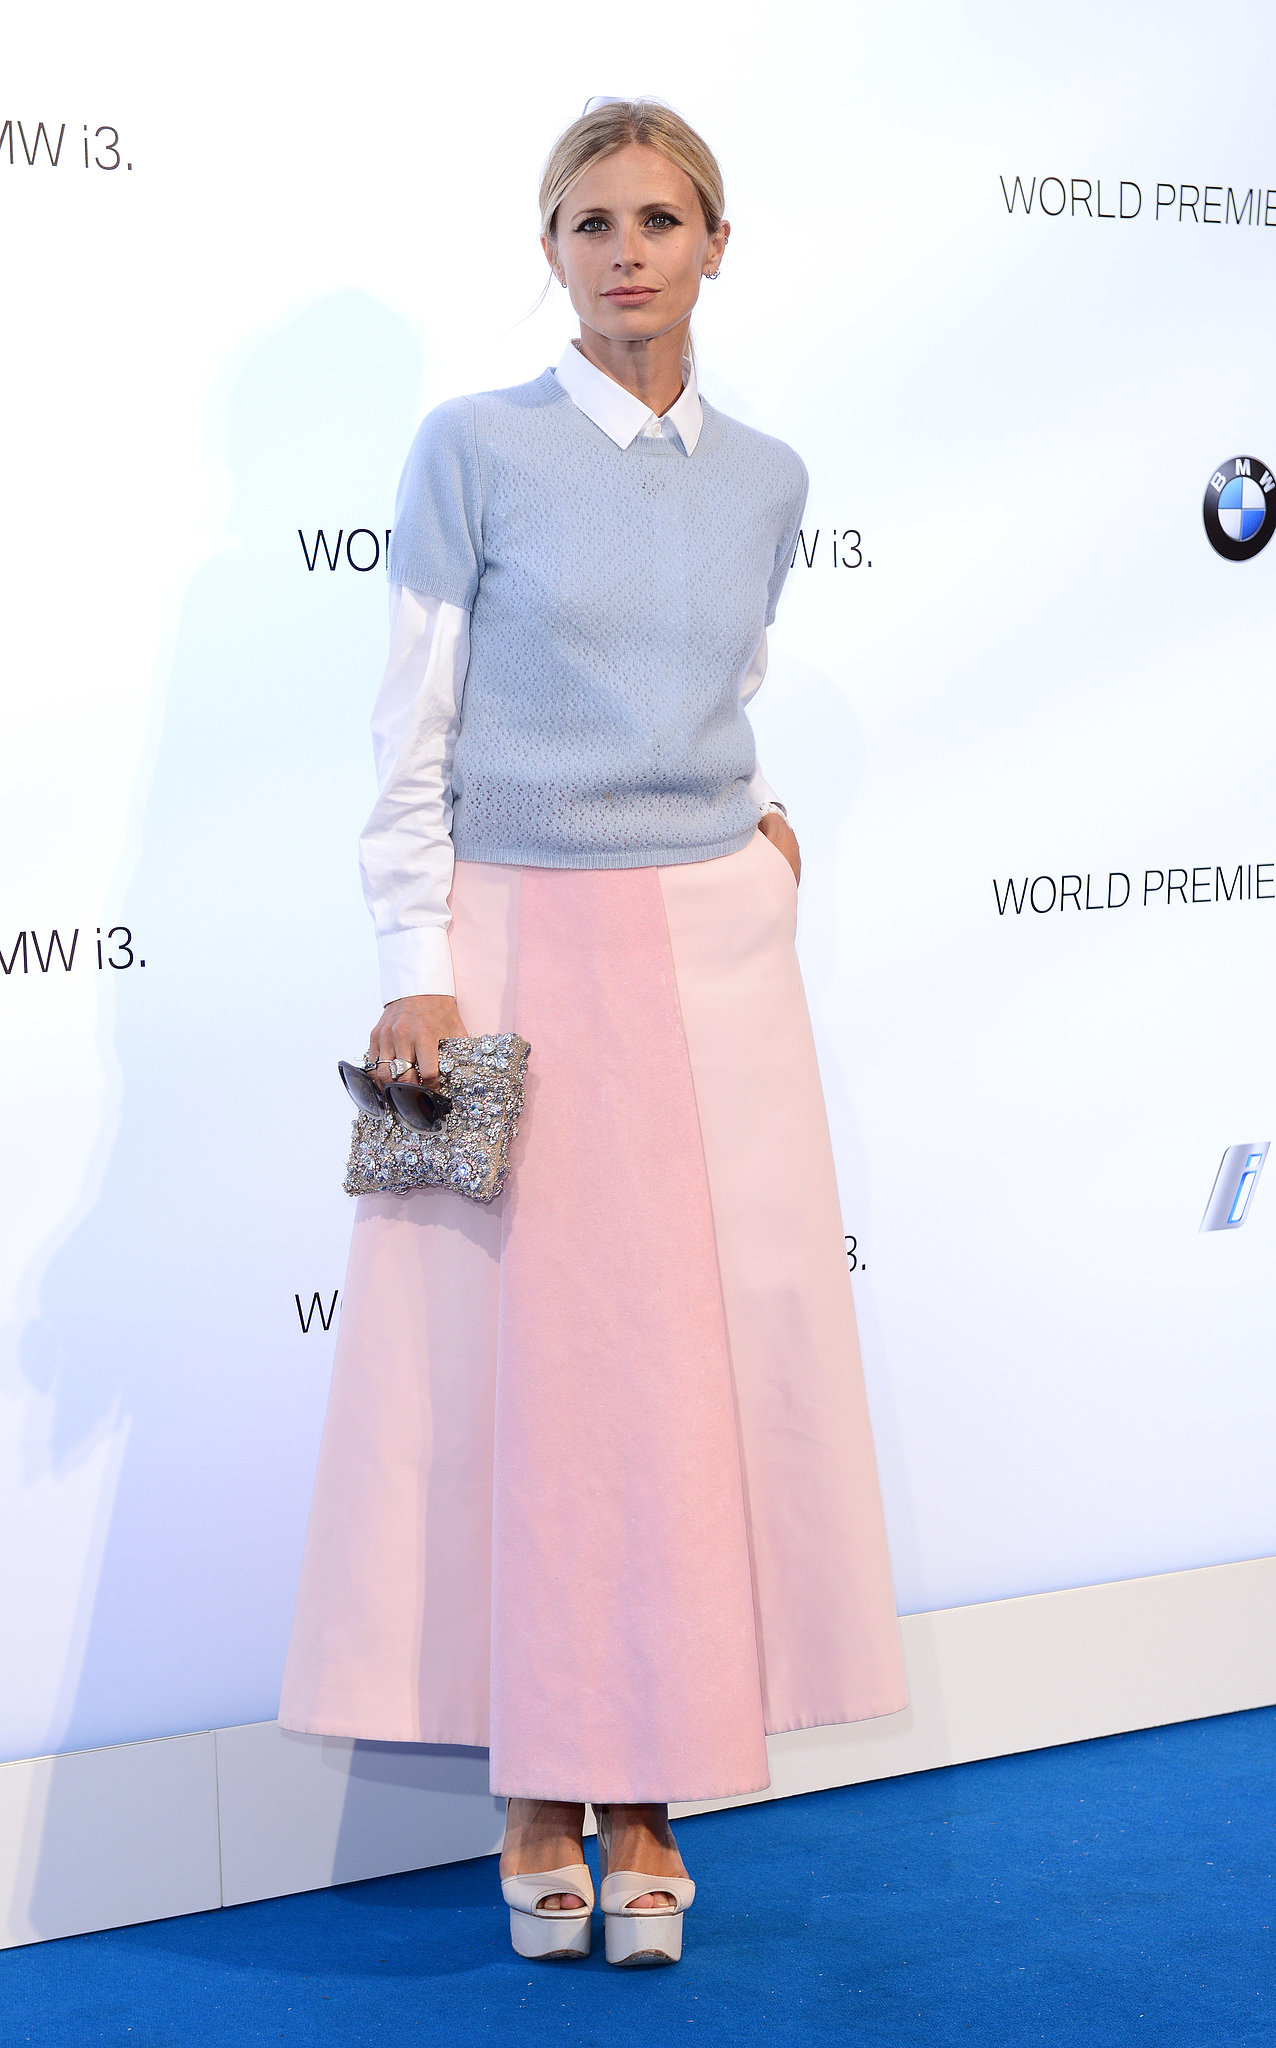 Looking sweet and chic in her colorblock pastels, Laura Bailey helped reveal BMW's electric car, the i3.